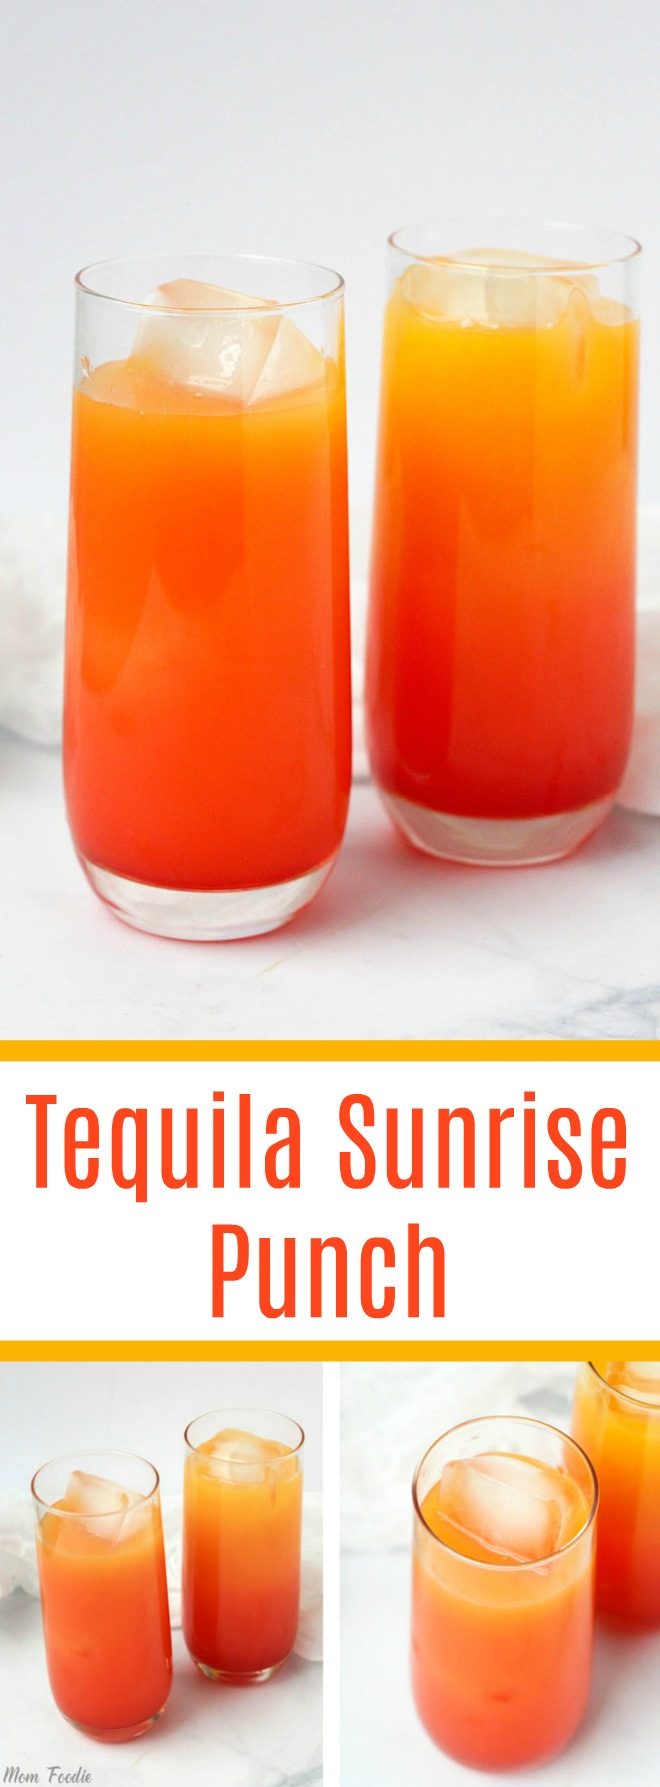 Tequila Sunrise Punch